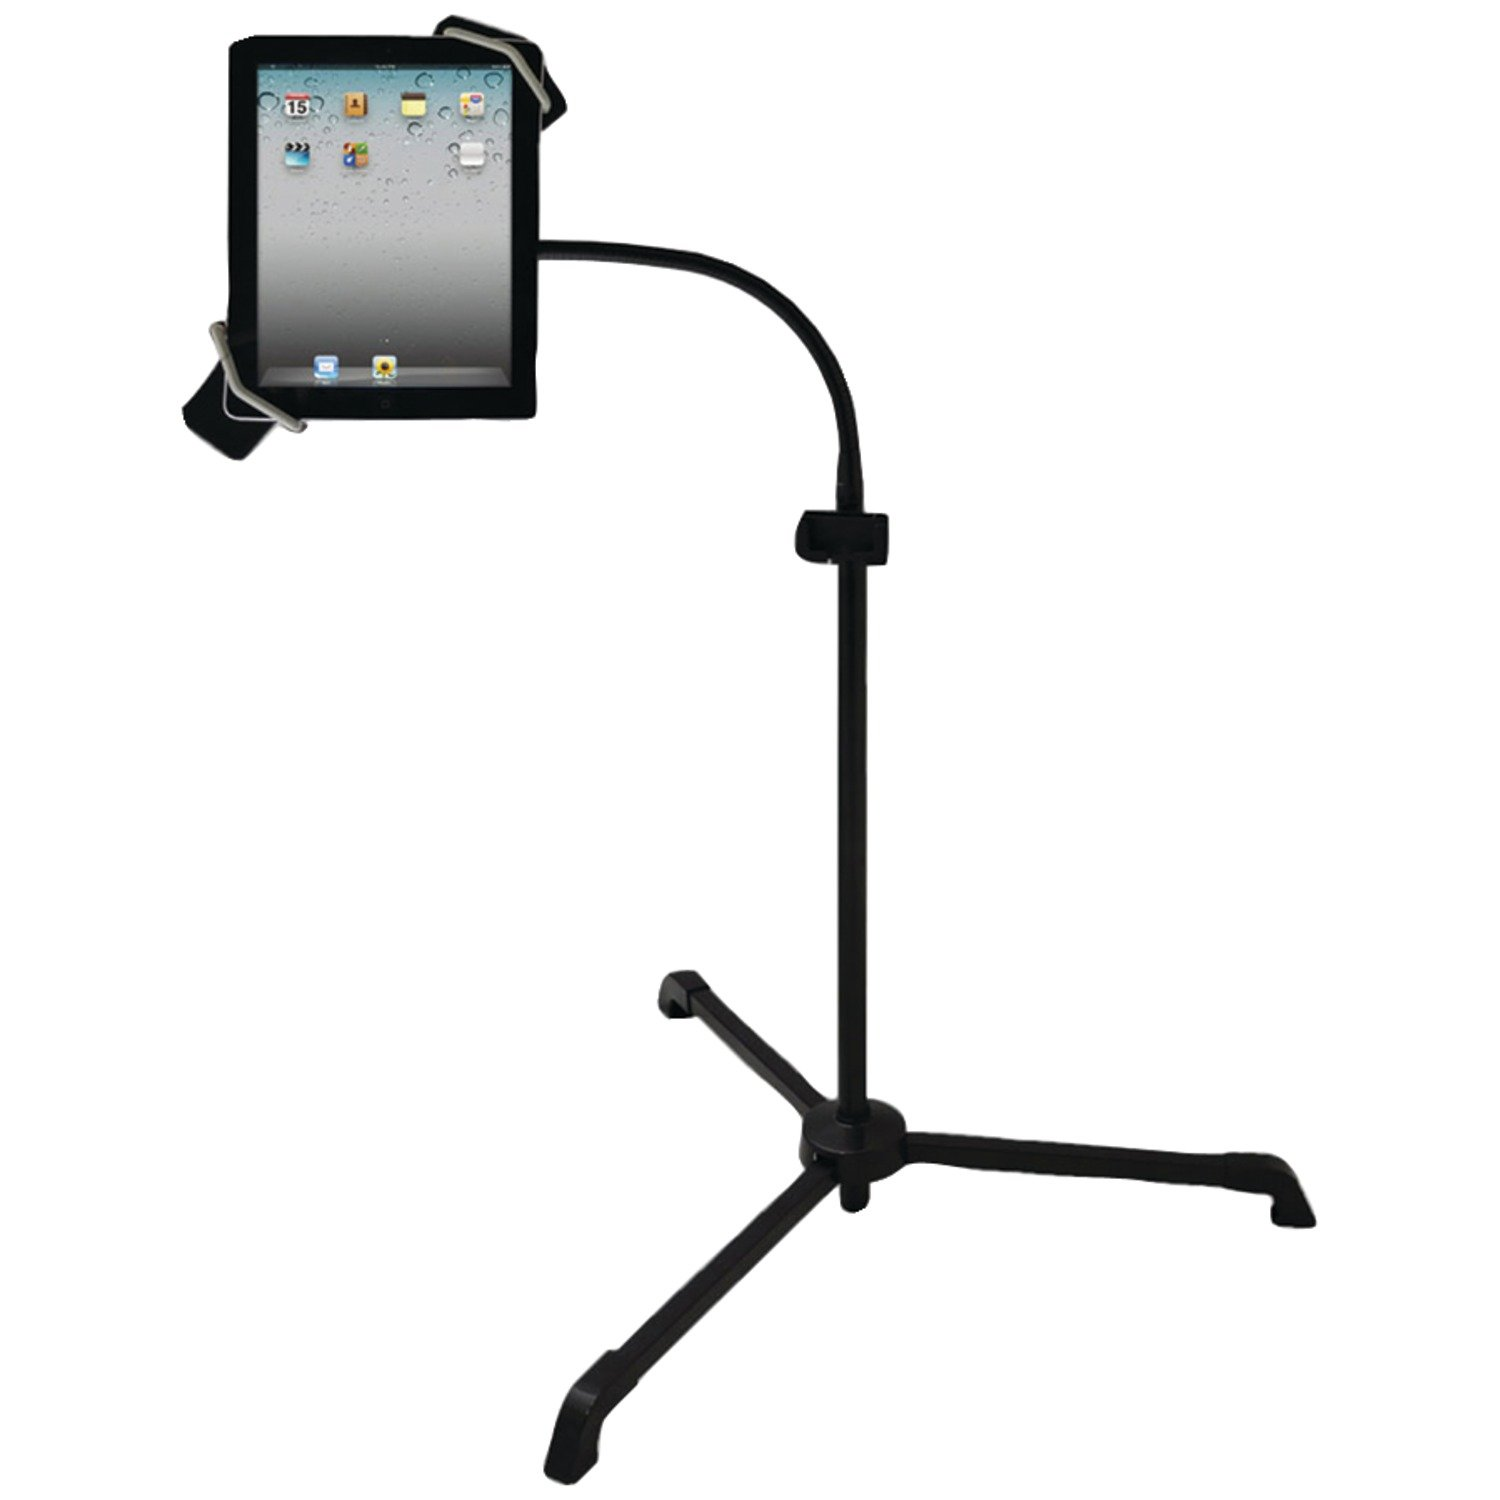 Pyle PMKSPAD2 Universal Tablet PC/Android/Kindle/iPad Floor Stand for Music/Instrument Notes Reading